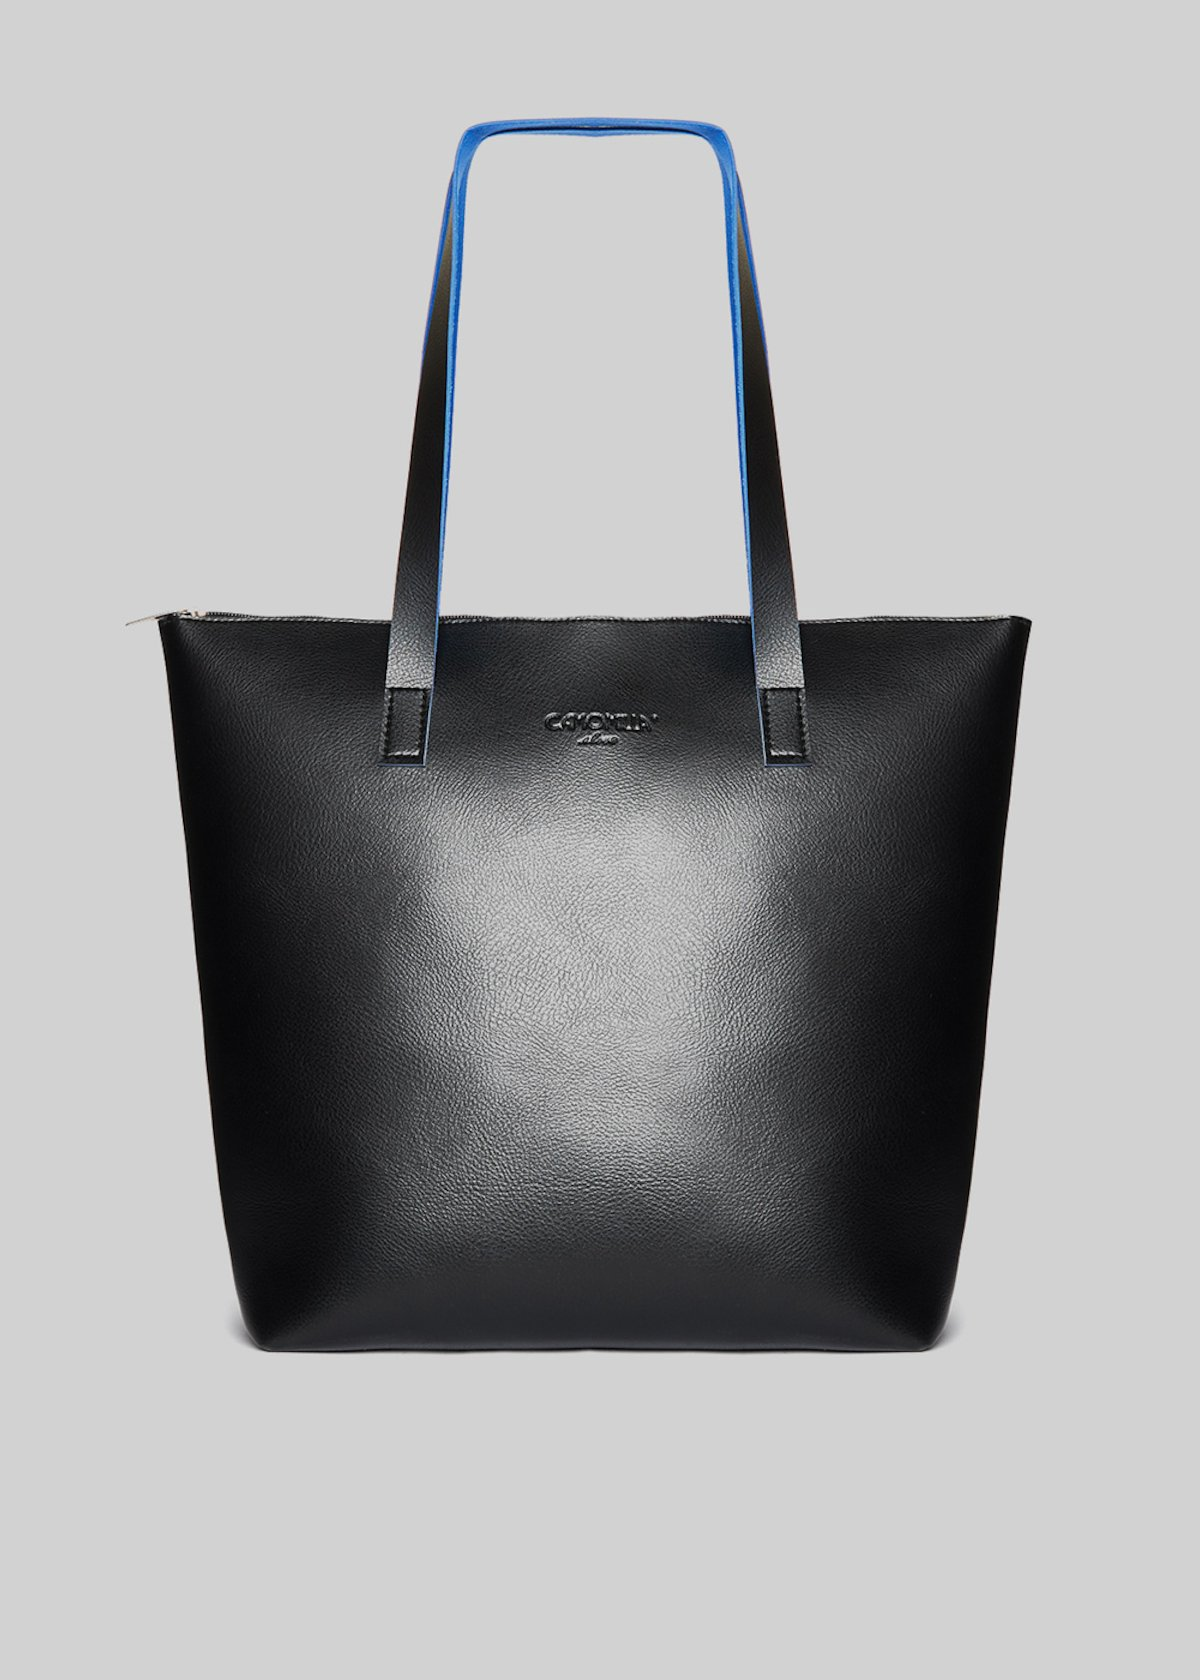 Bilia shopping bag in double colour faux leather - Black / Hero